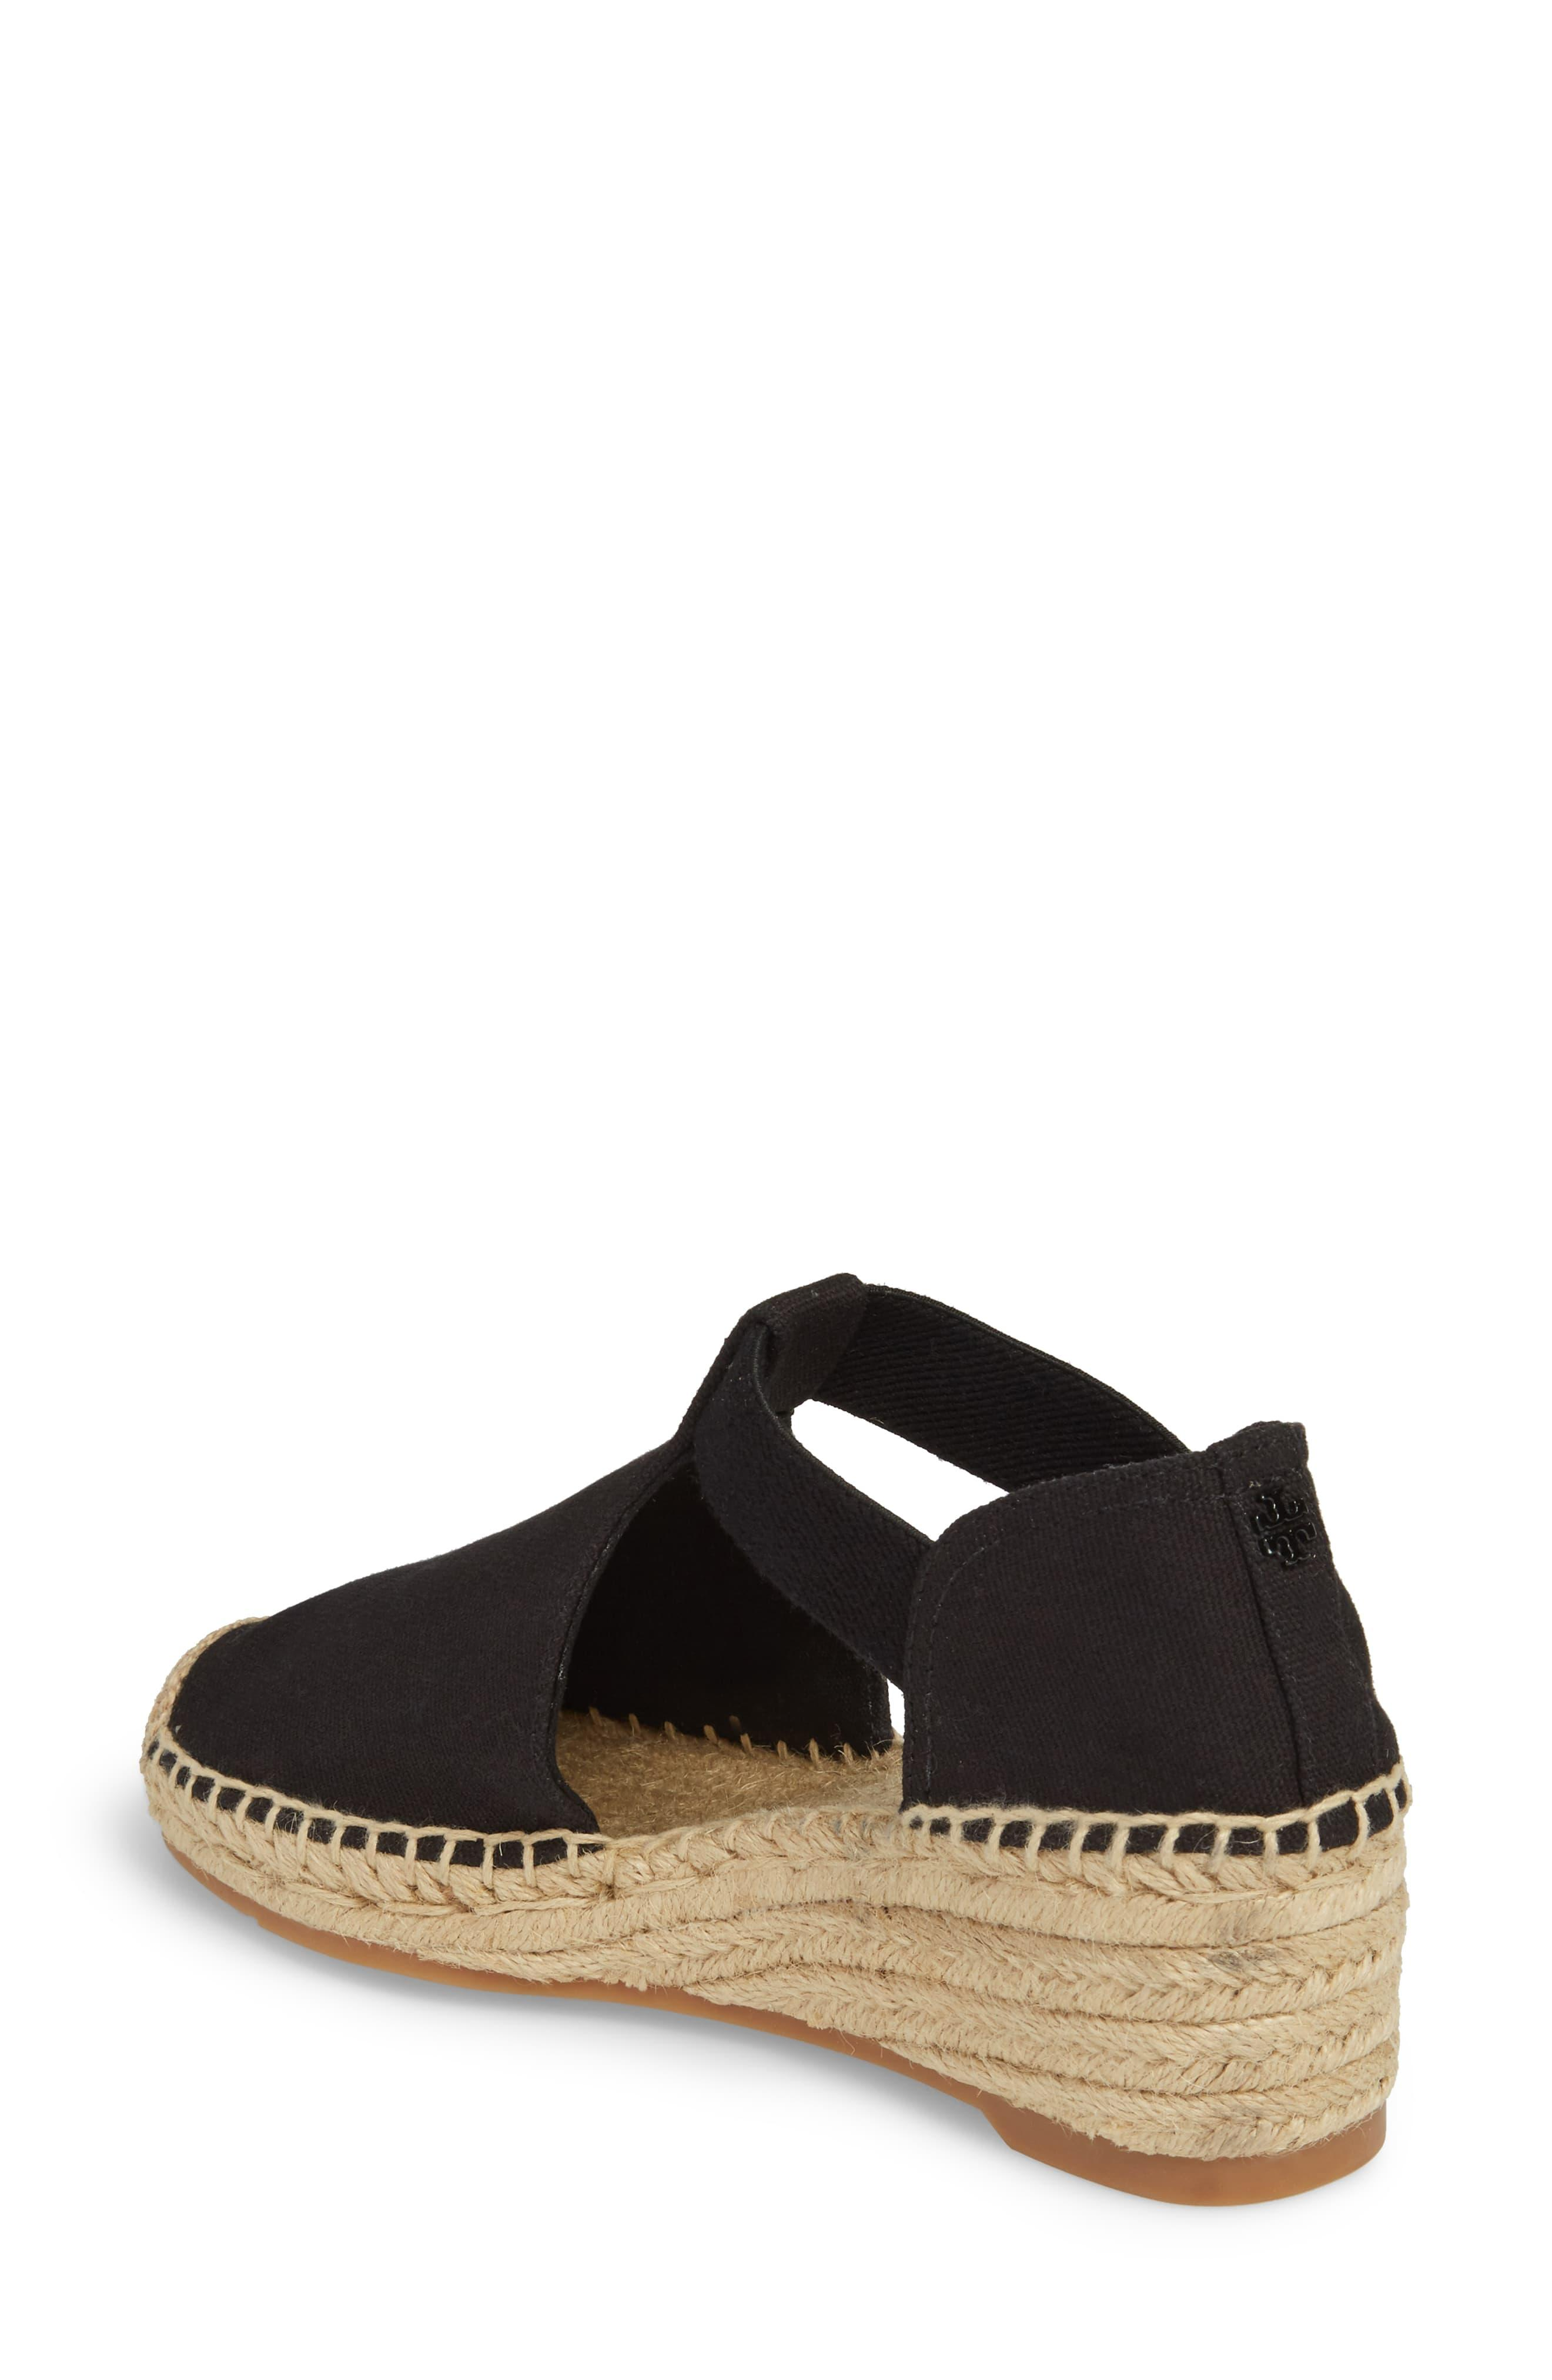 11c3126f576 Tory Burch Black Catalina 3 Espadrille Wedge Sandal